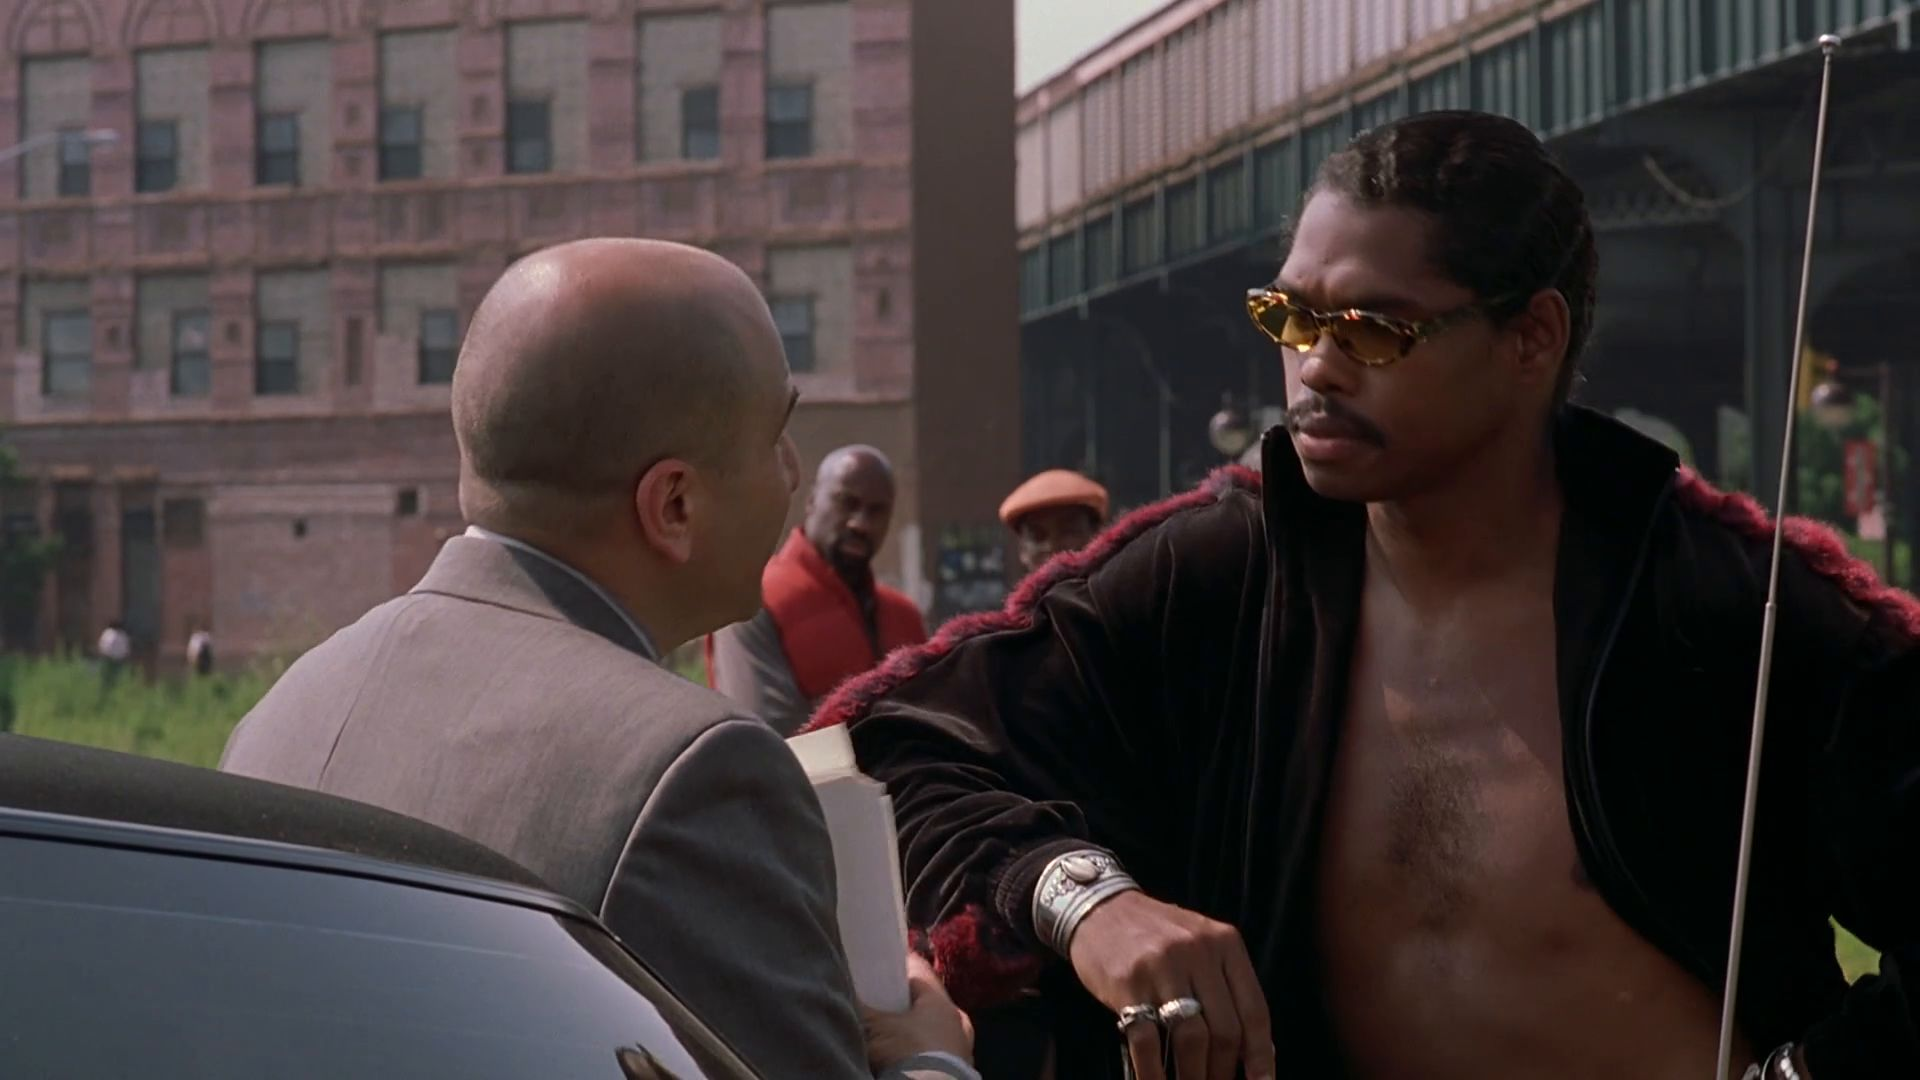 Pootie Tang 2001 Watch On Starz Epix And Streaming Online